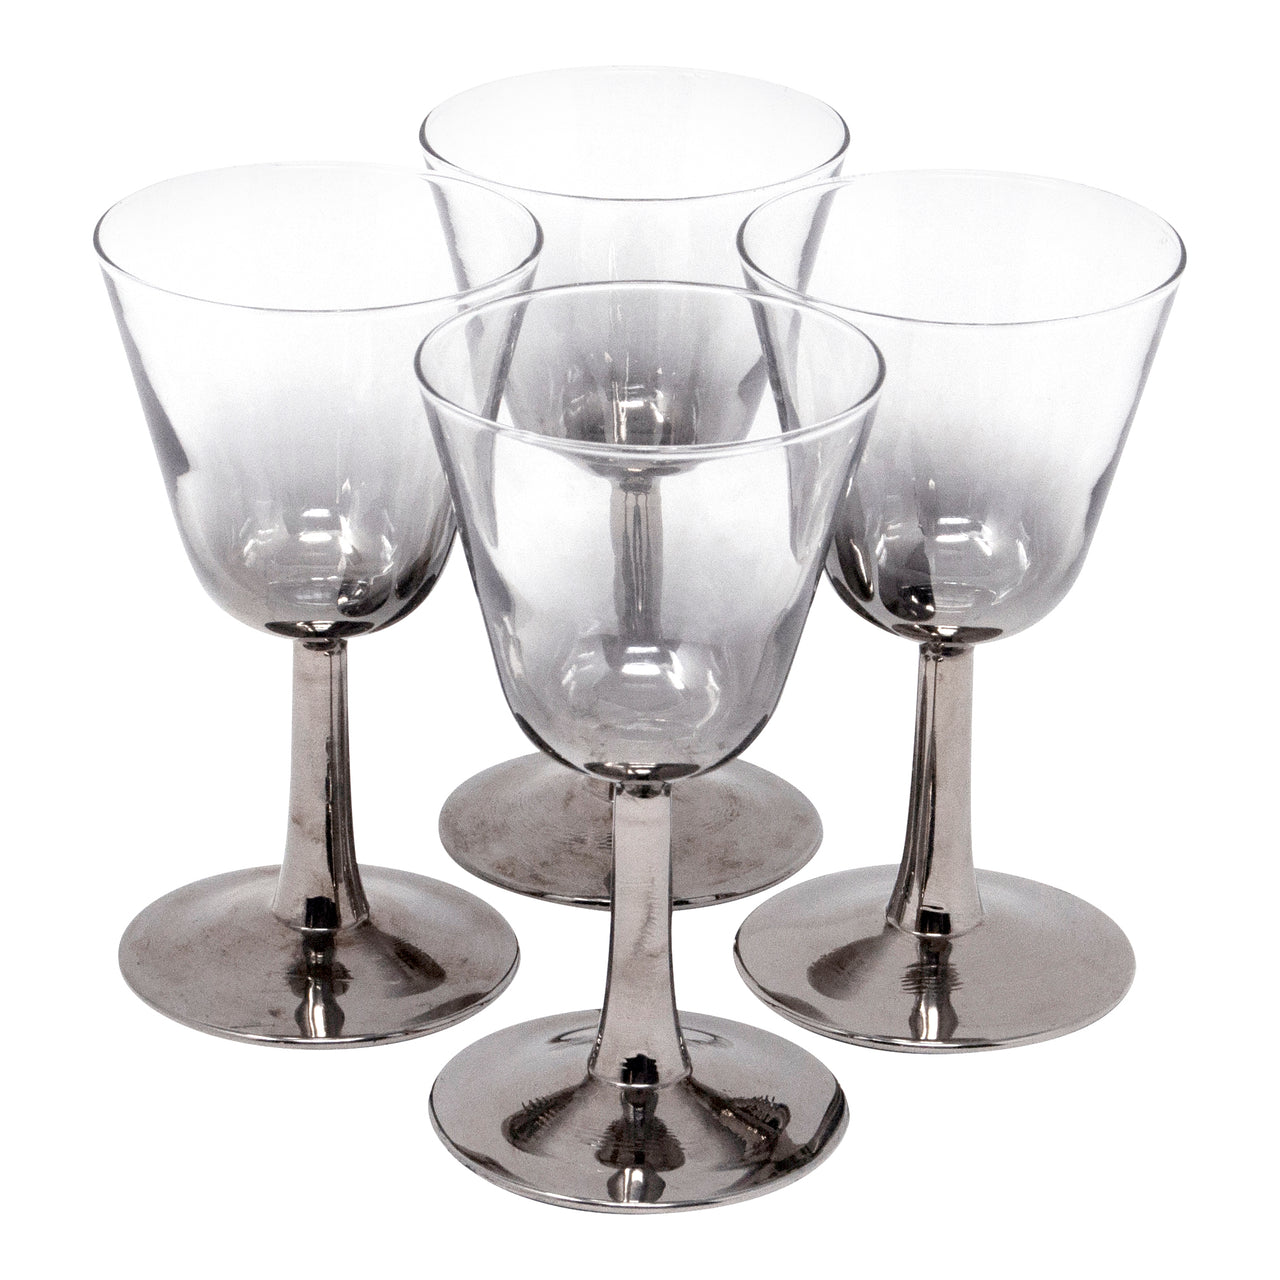 Vintage Mercury Stem Cocktail Glasses | The Hour Shop